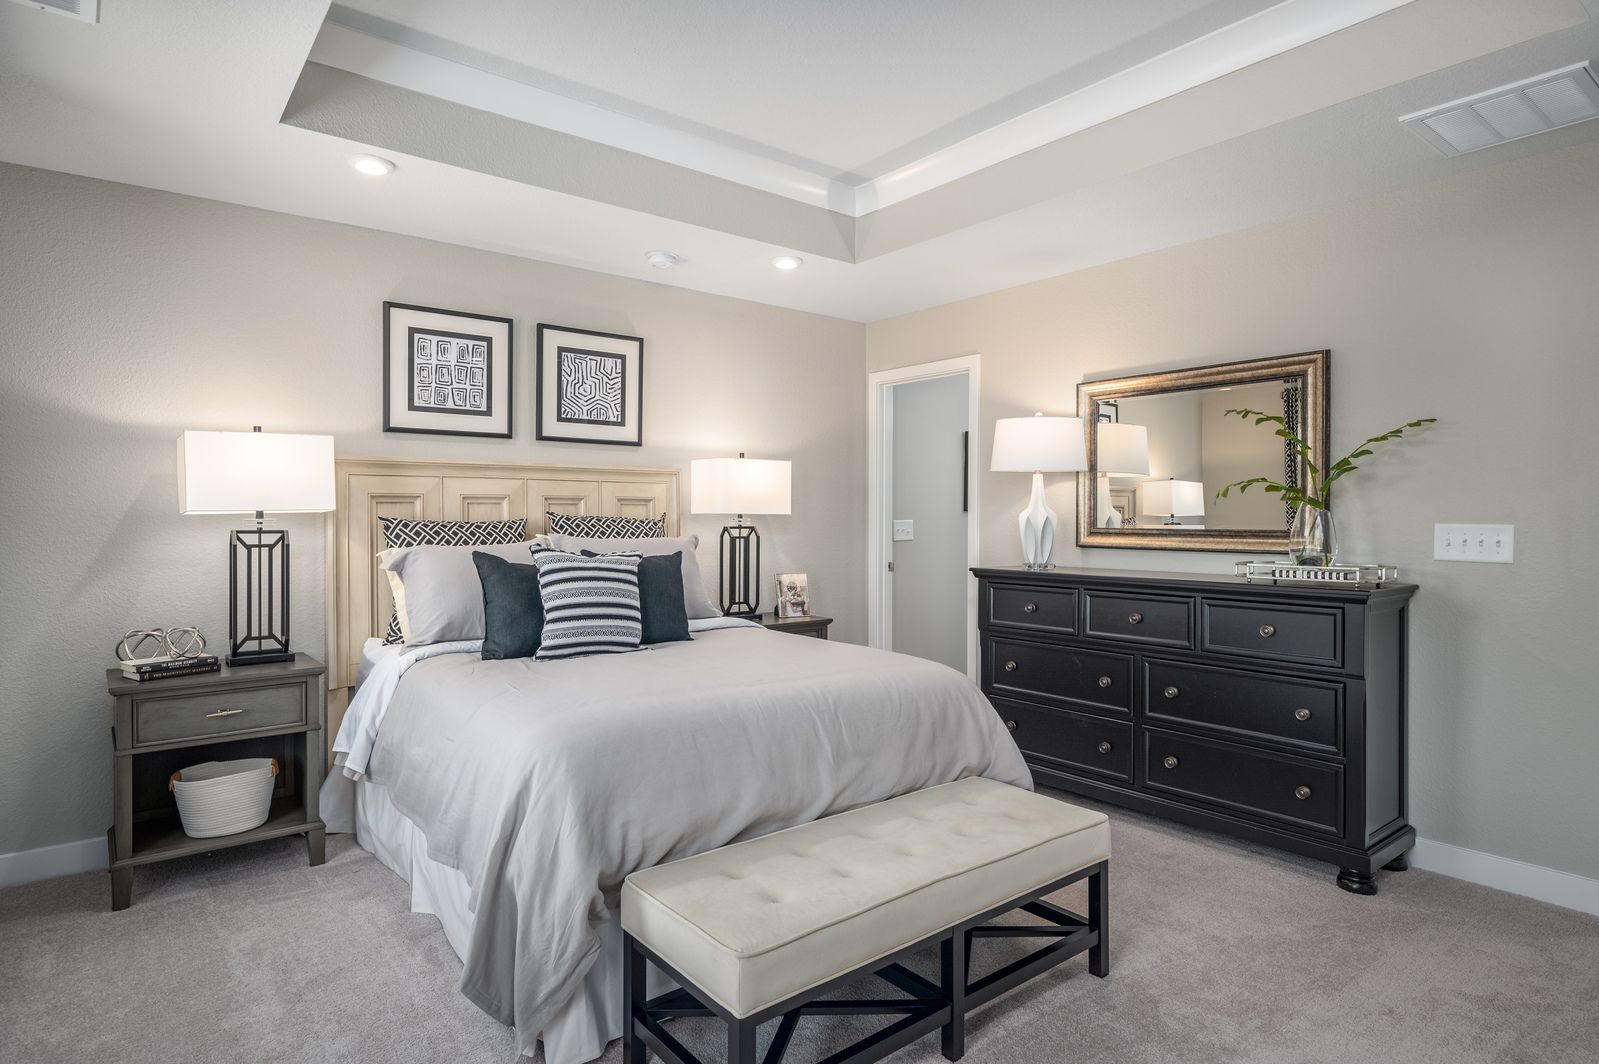 Bedroom featured in the Roxbury w/Extension & Finished basement By Ryan Homes in Akron, OH